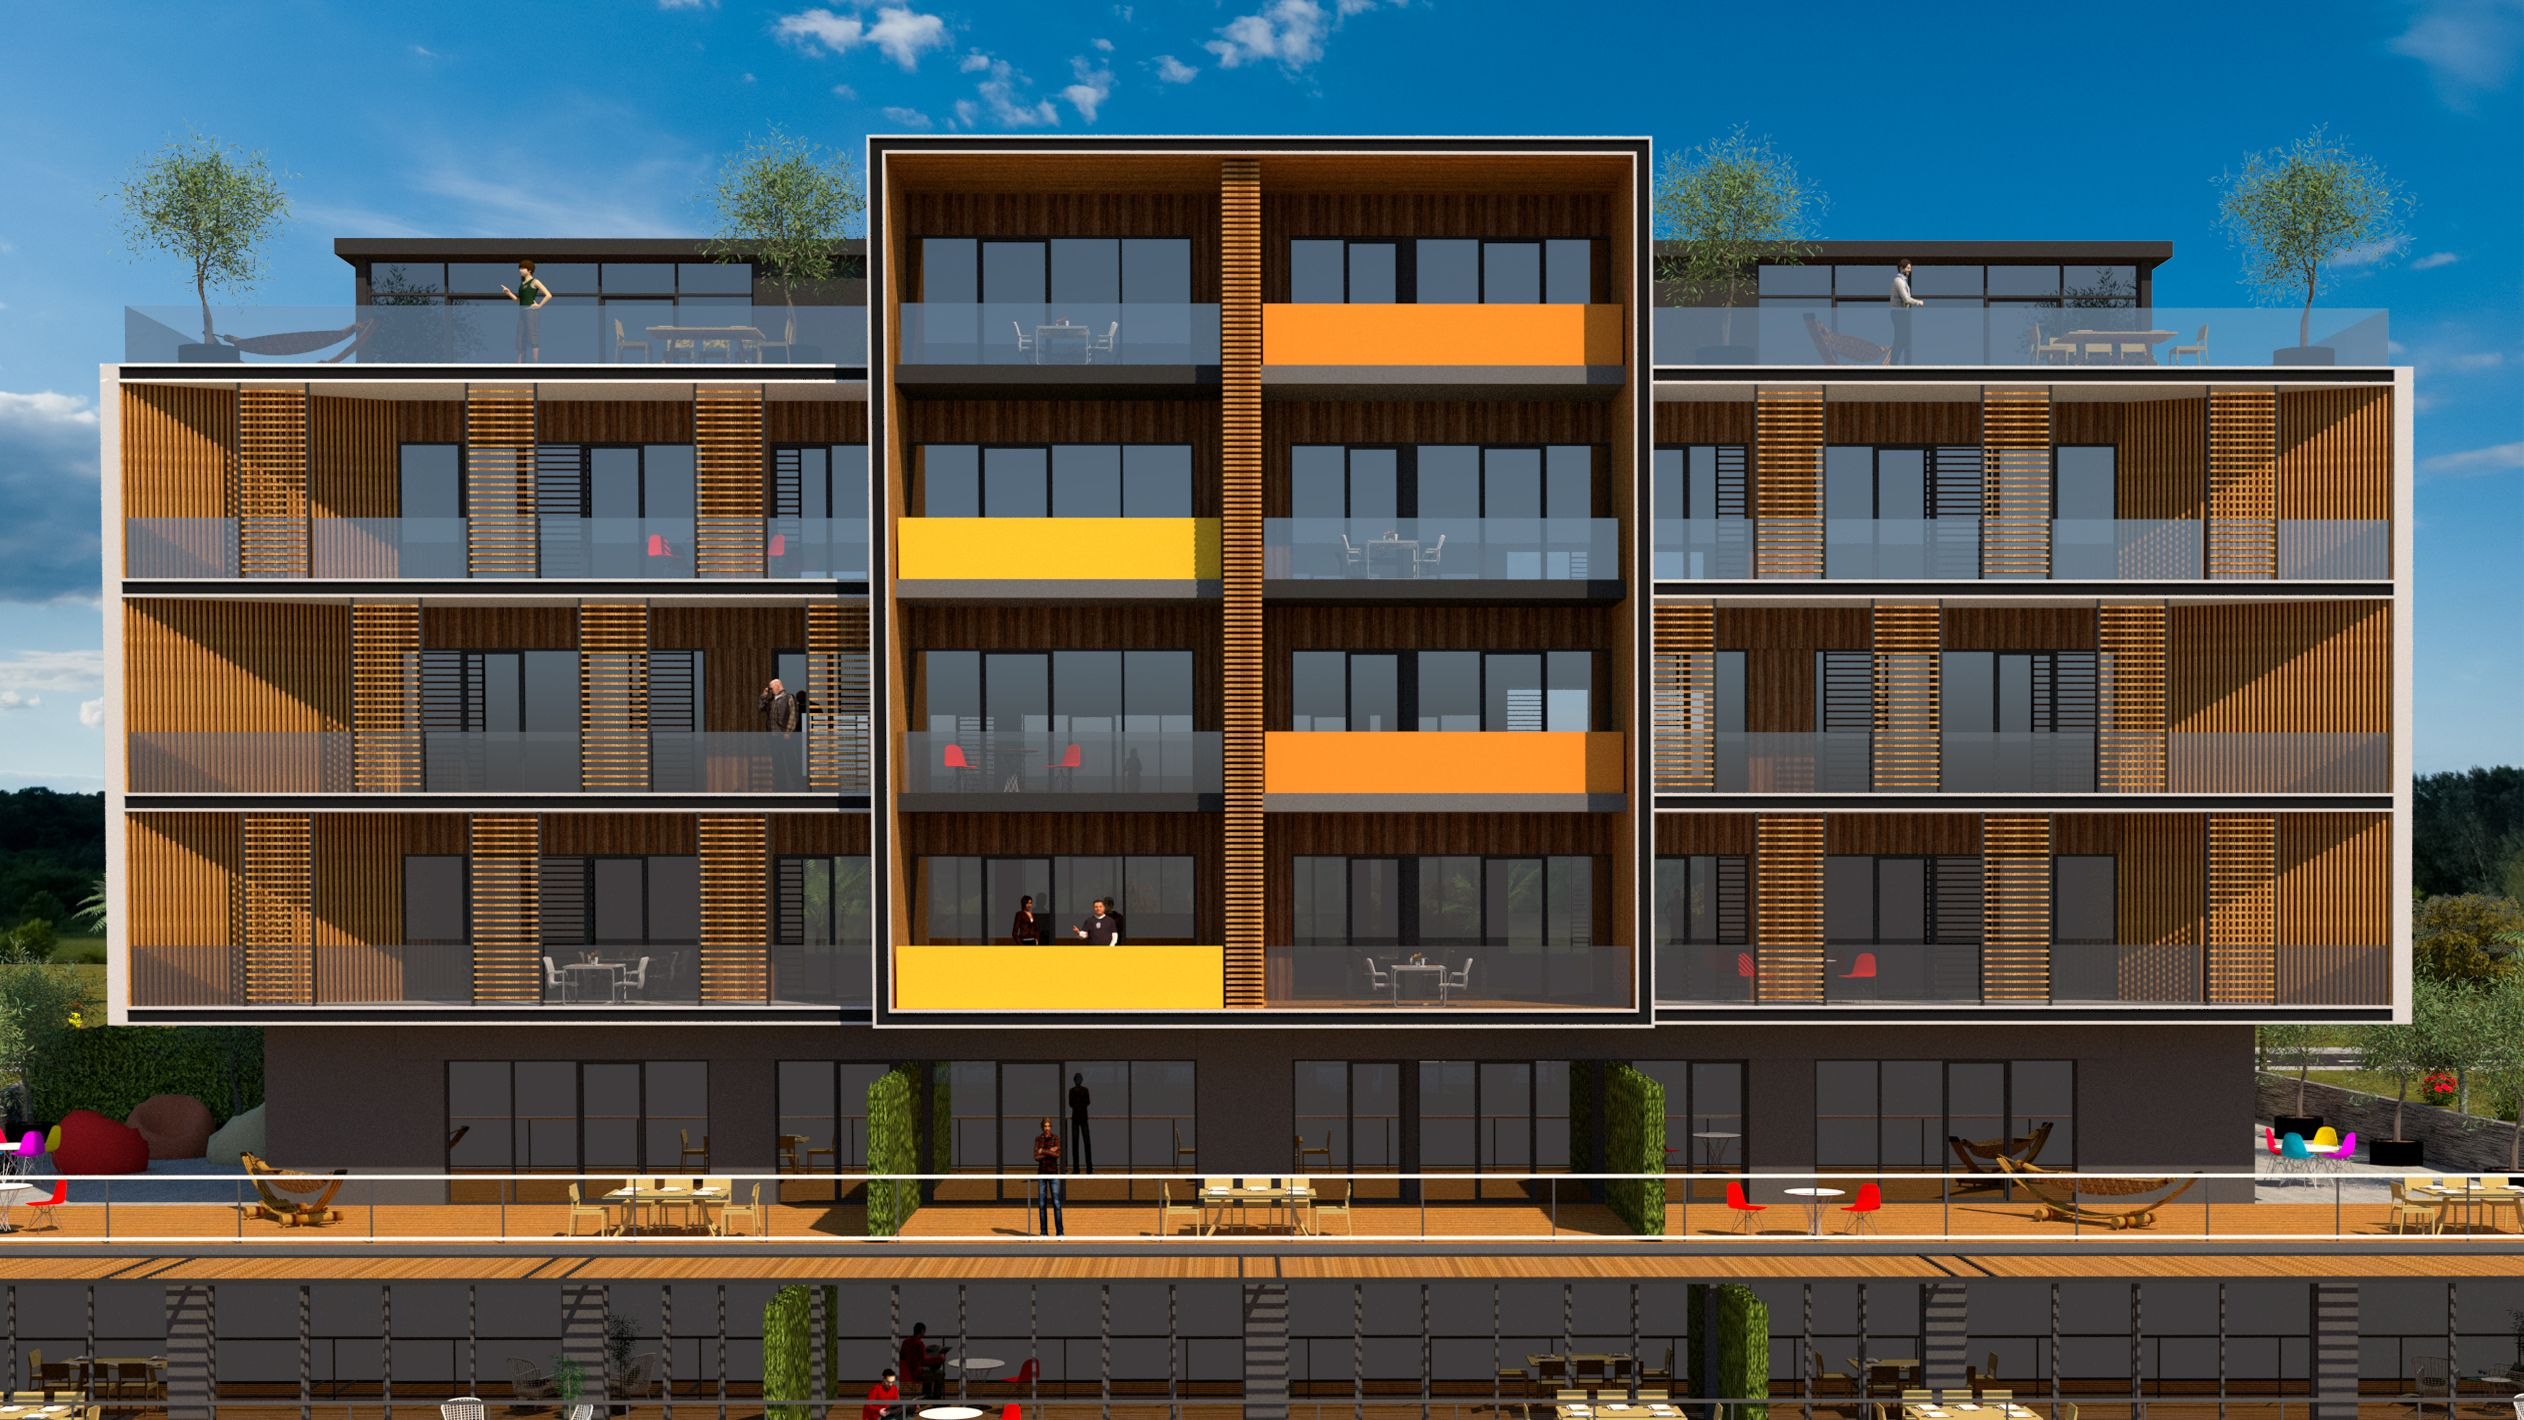 New Facade Designed As A New Proposal For Same Building Building Has G 3 Floors Apartments All Facades Are Emphasized With Diffrent Vertical Voids Vertical Vo